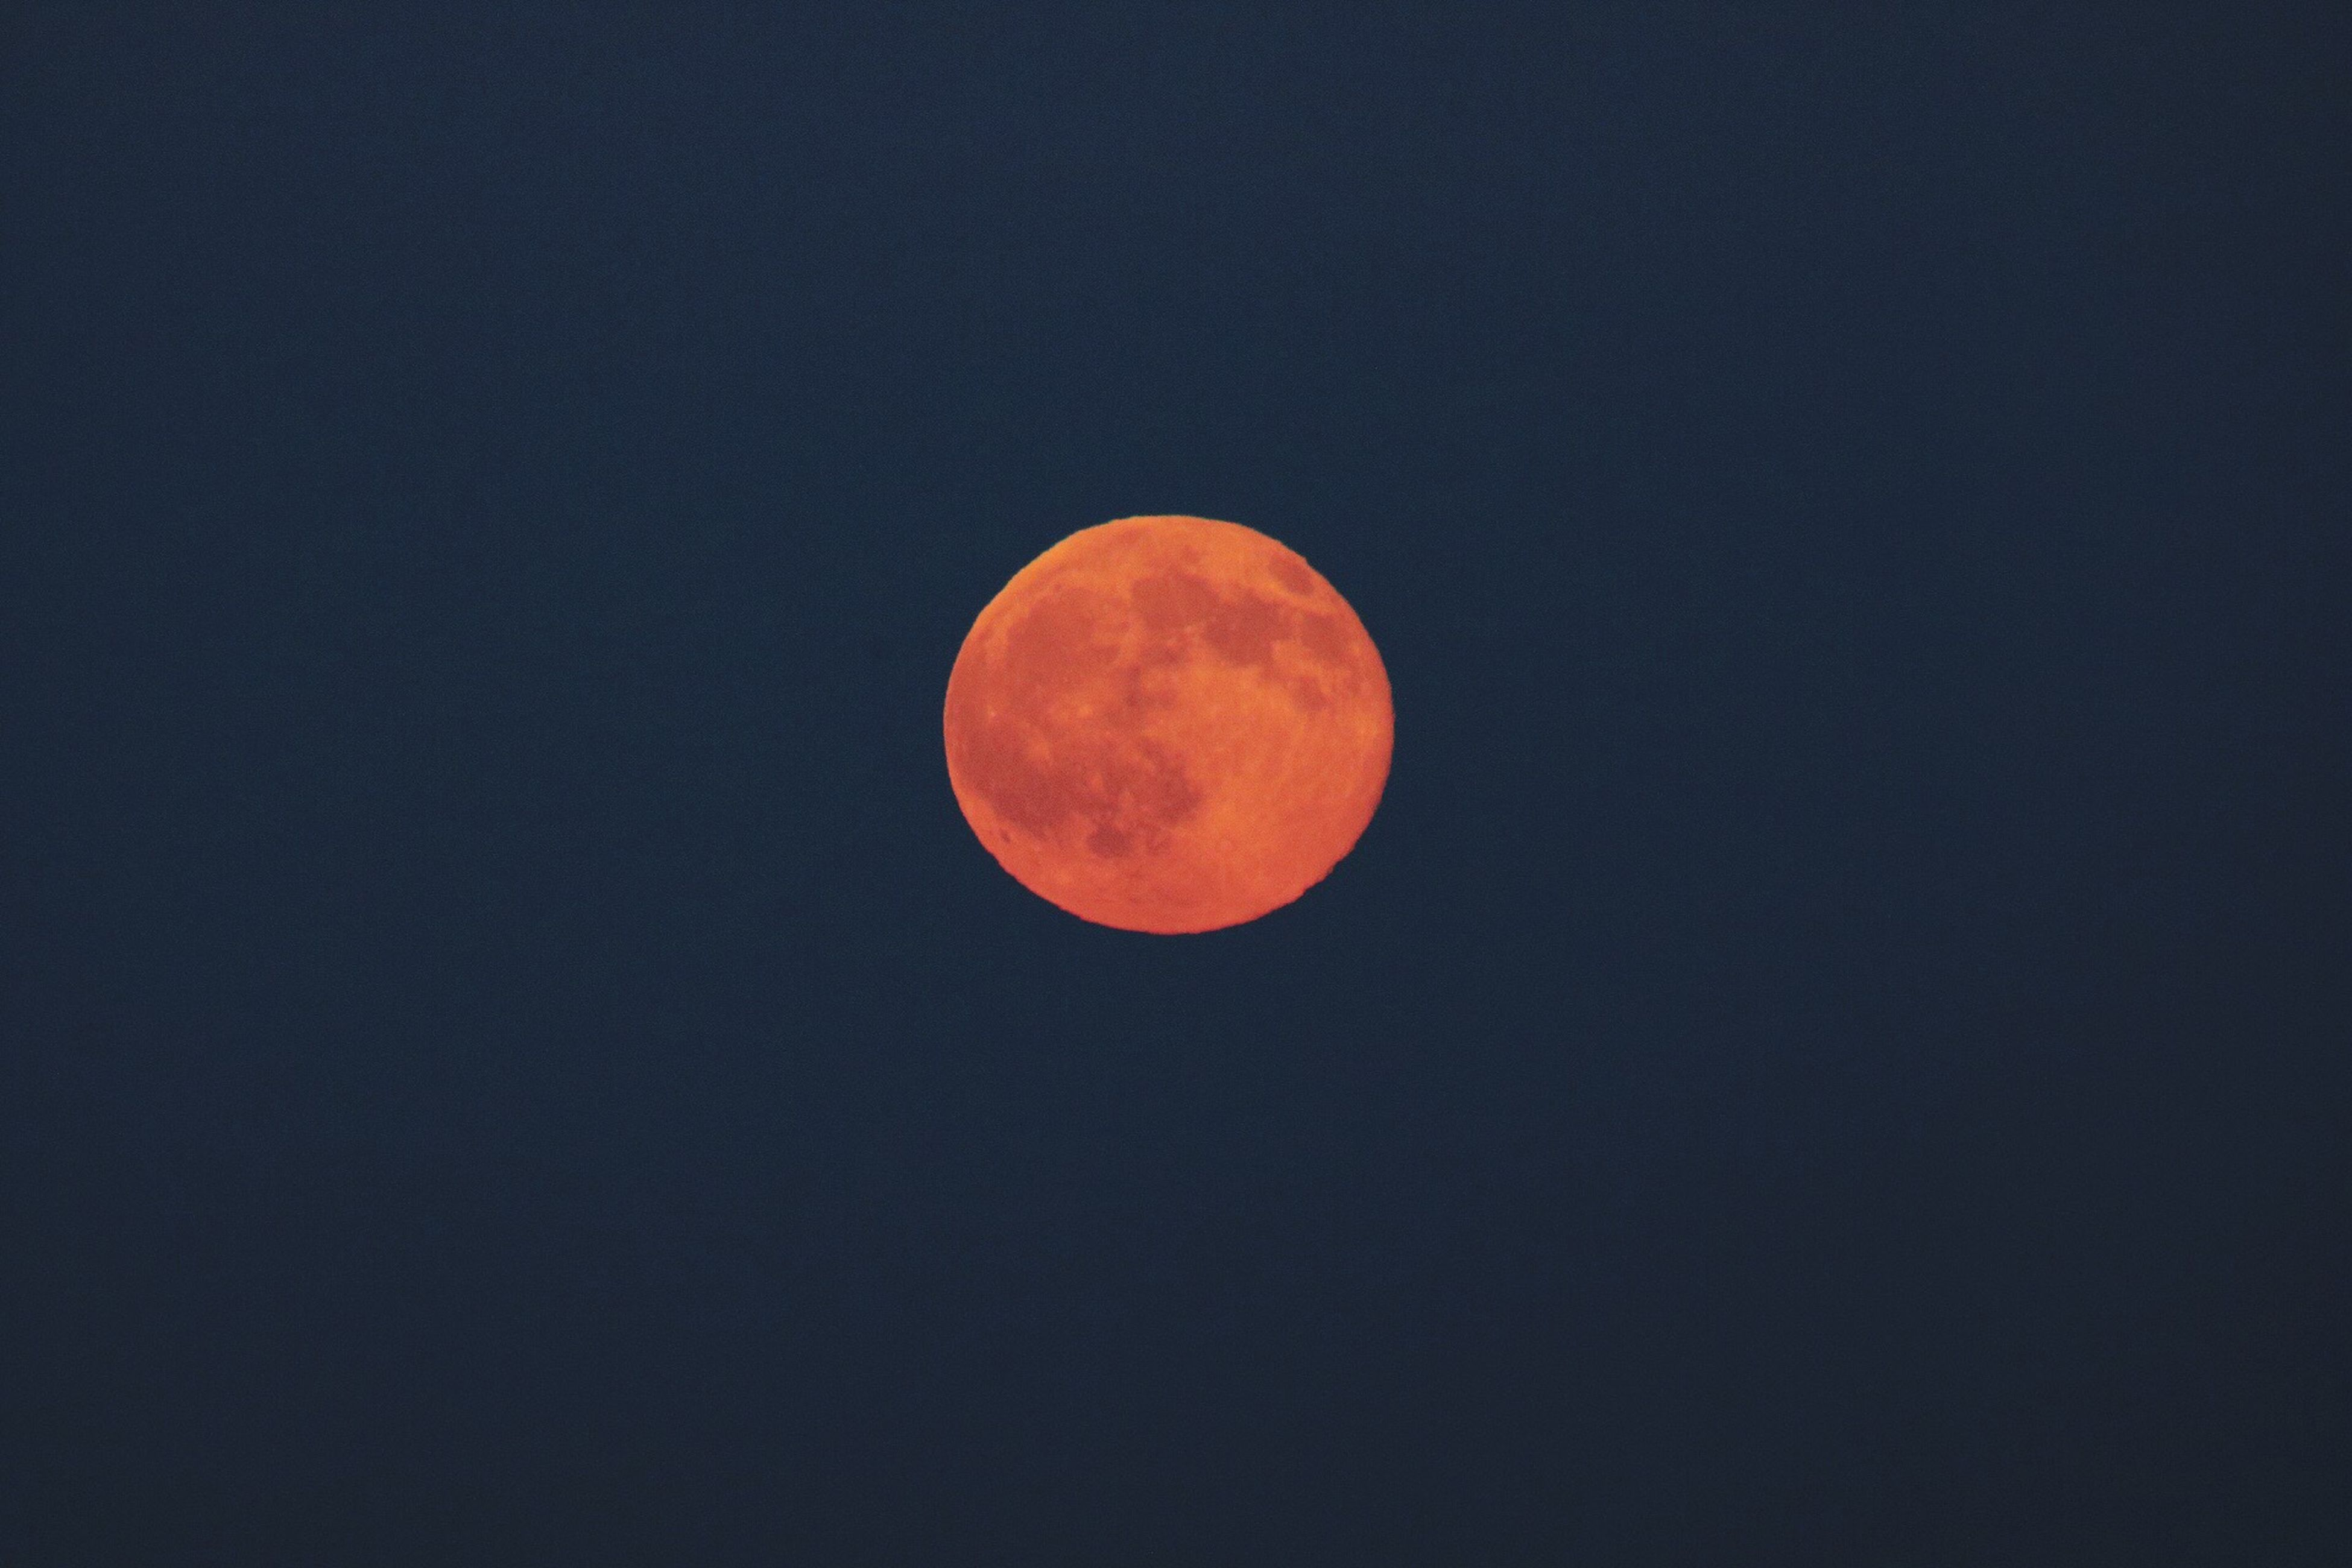 moon, copy space, low angle view, scenics, full moon, clear sky, circle, tranquility, astronomy, beauty in nature, tranquil scene, night, planetary moon, sky, nature, idyllic, red, no people, dark, orange color